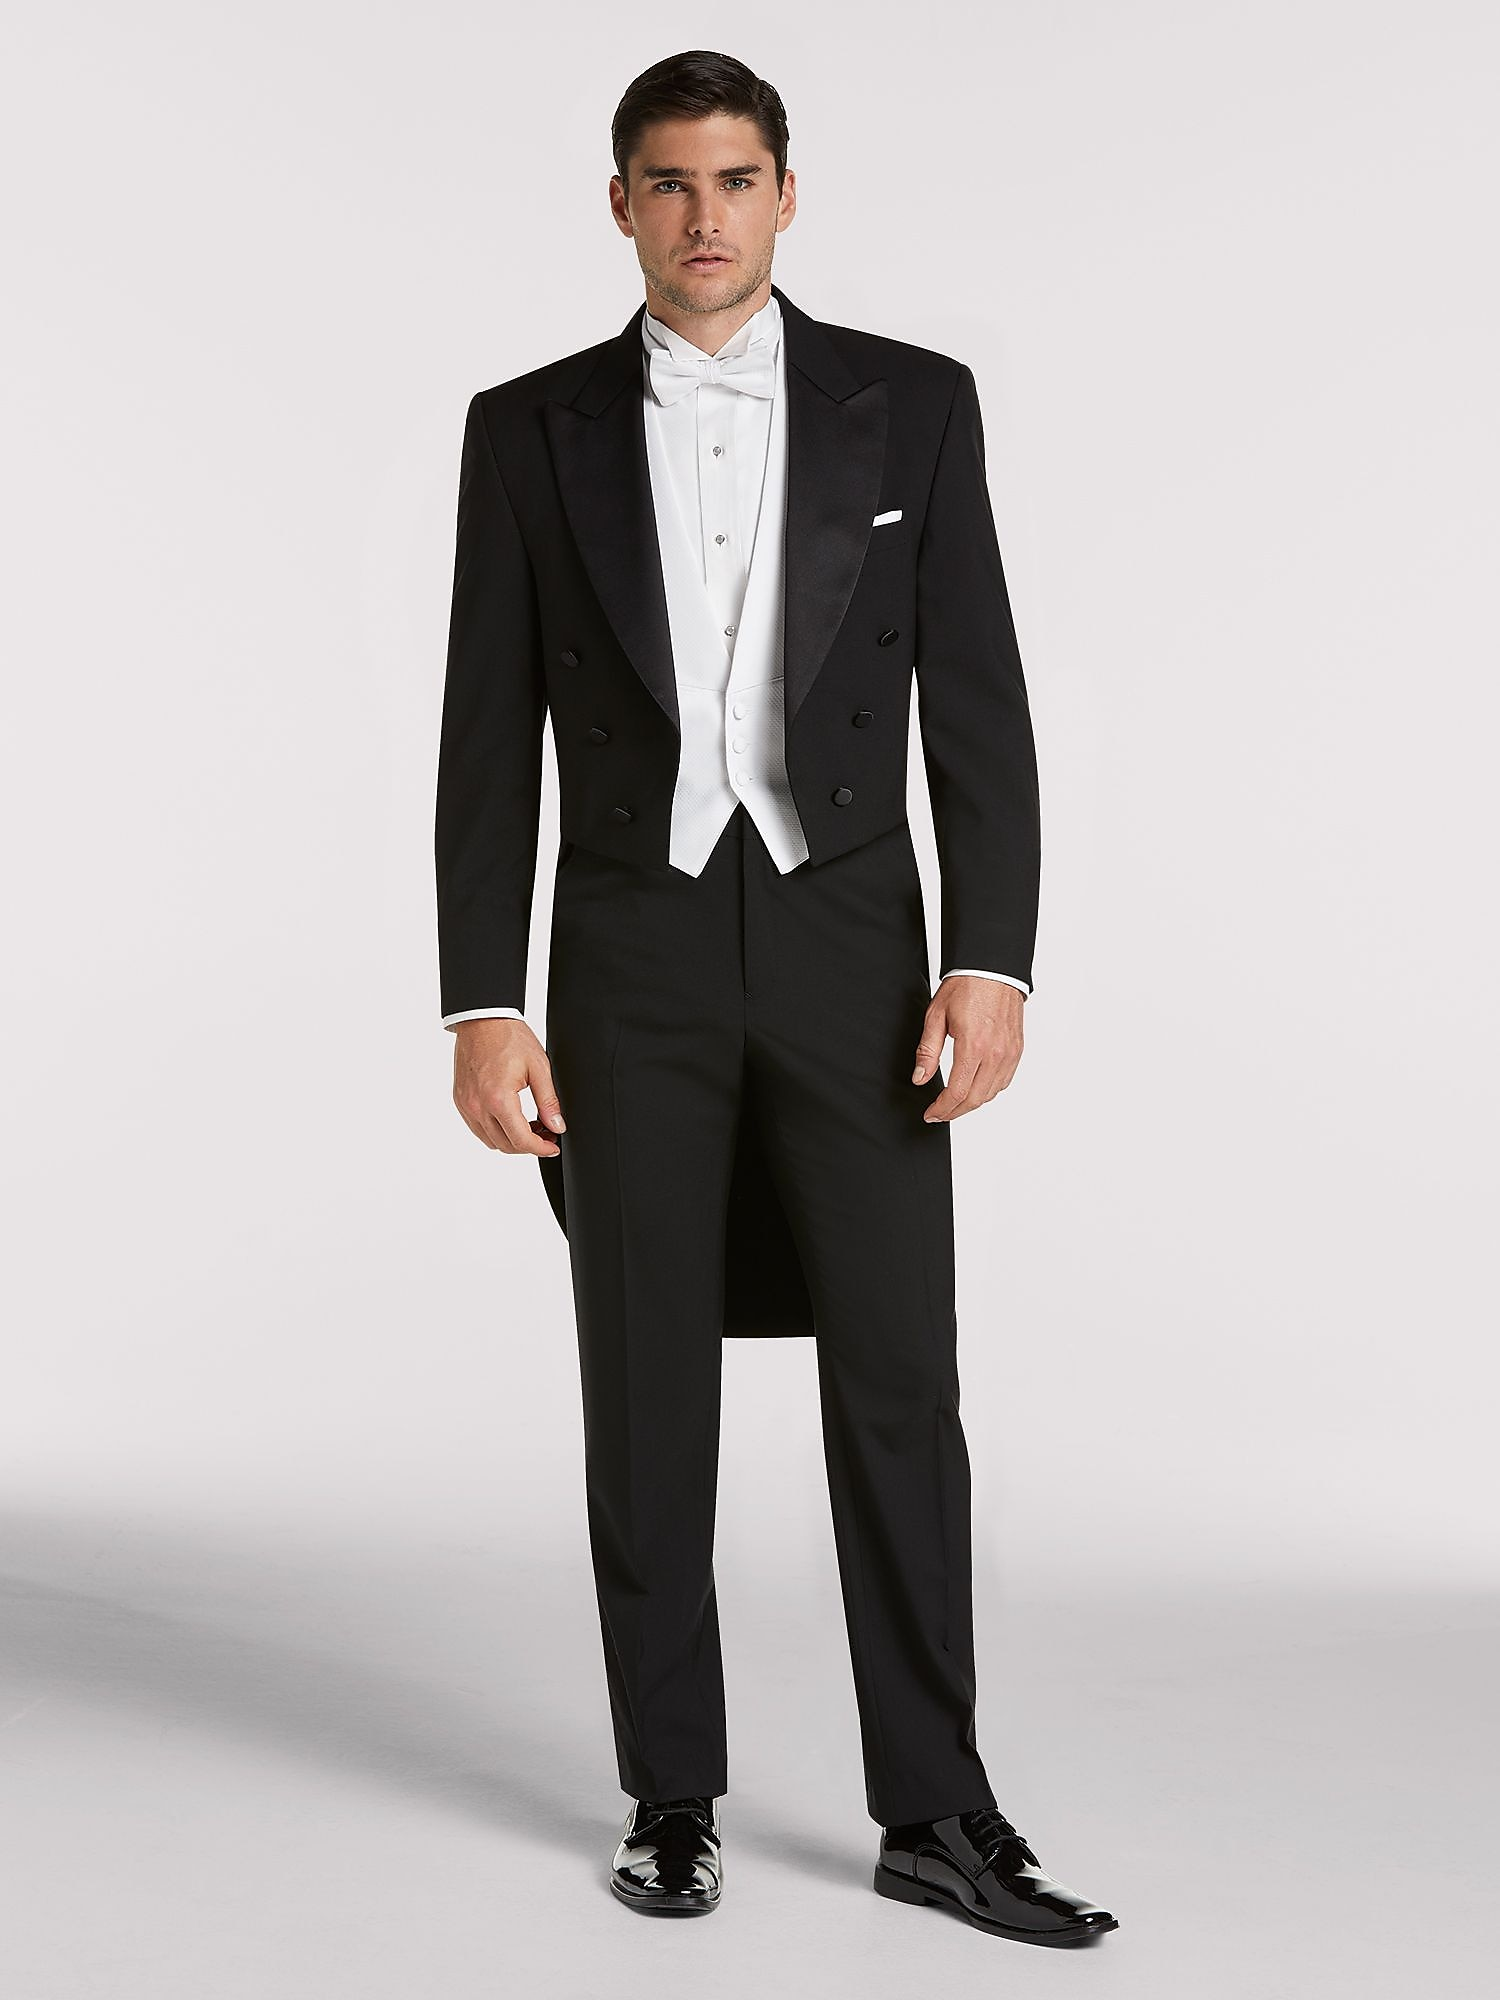 2777f9394c8 Here's what's included in your package: Joseph & Feiss Black Full Dress  Tailcoat ...